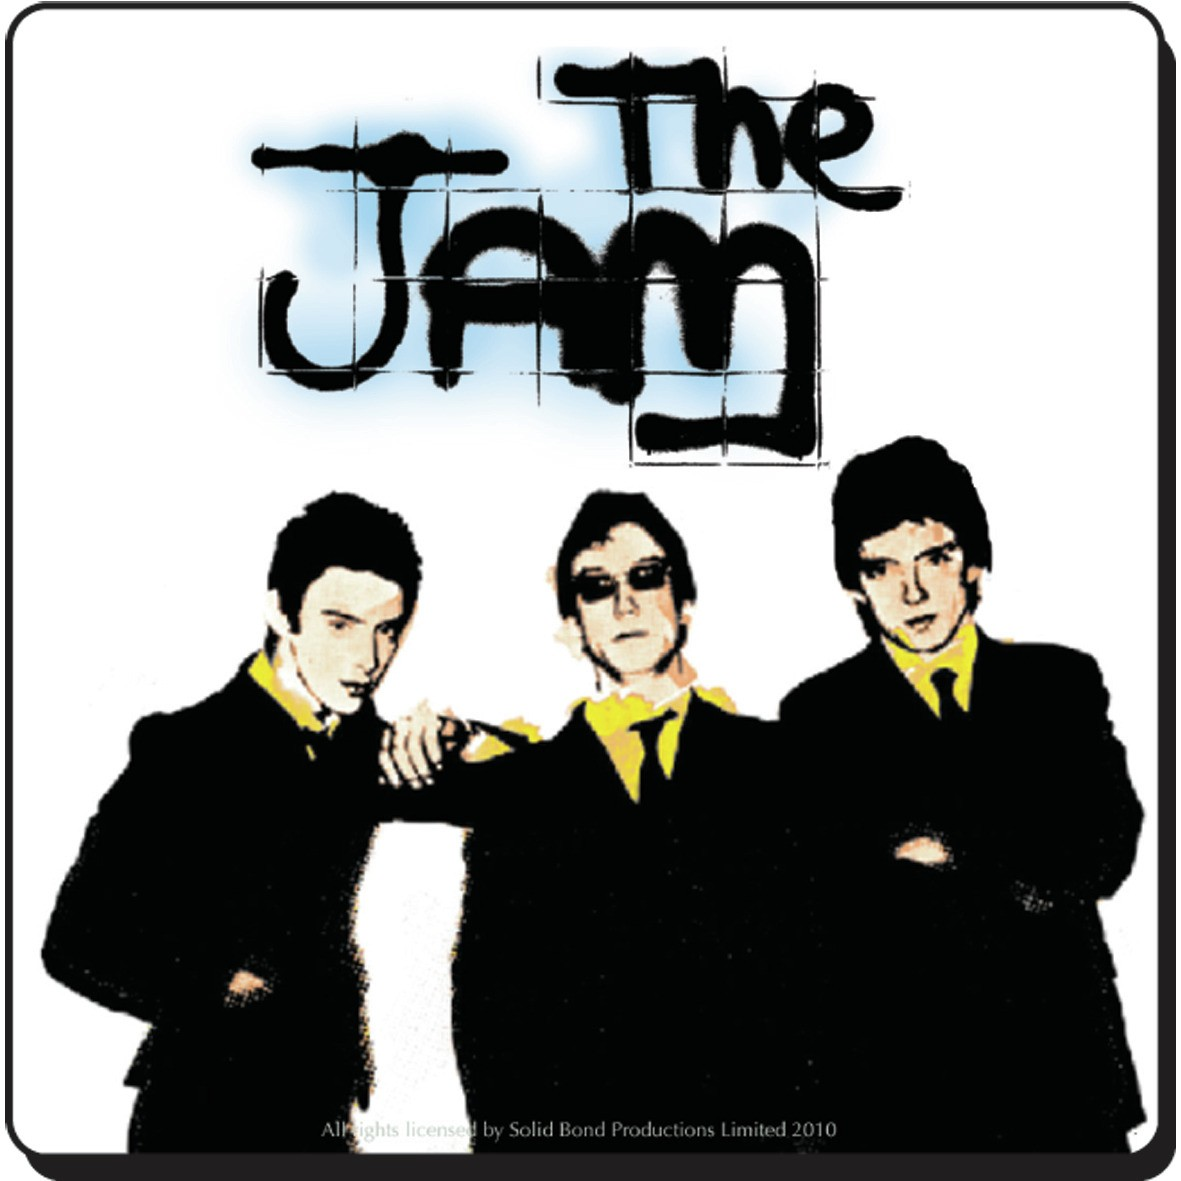 The Jam In The City Drinks Mat Coaster Hb